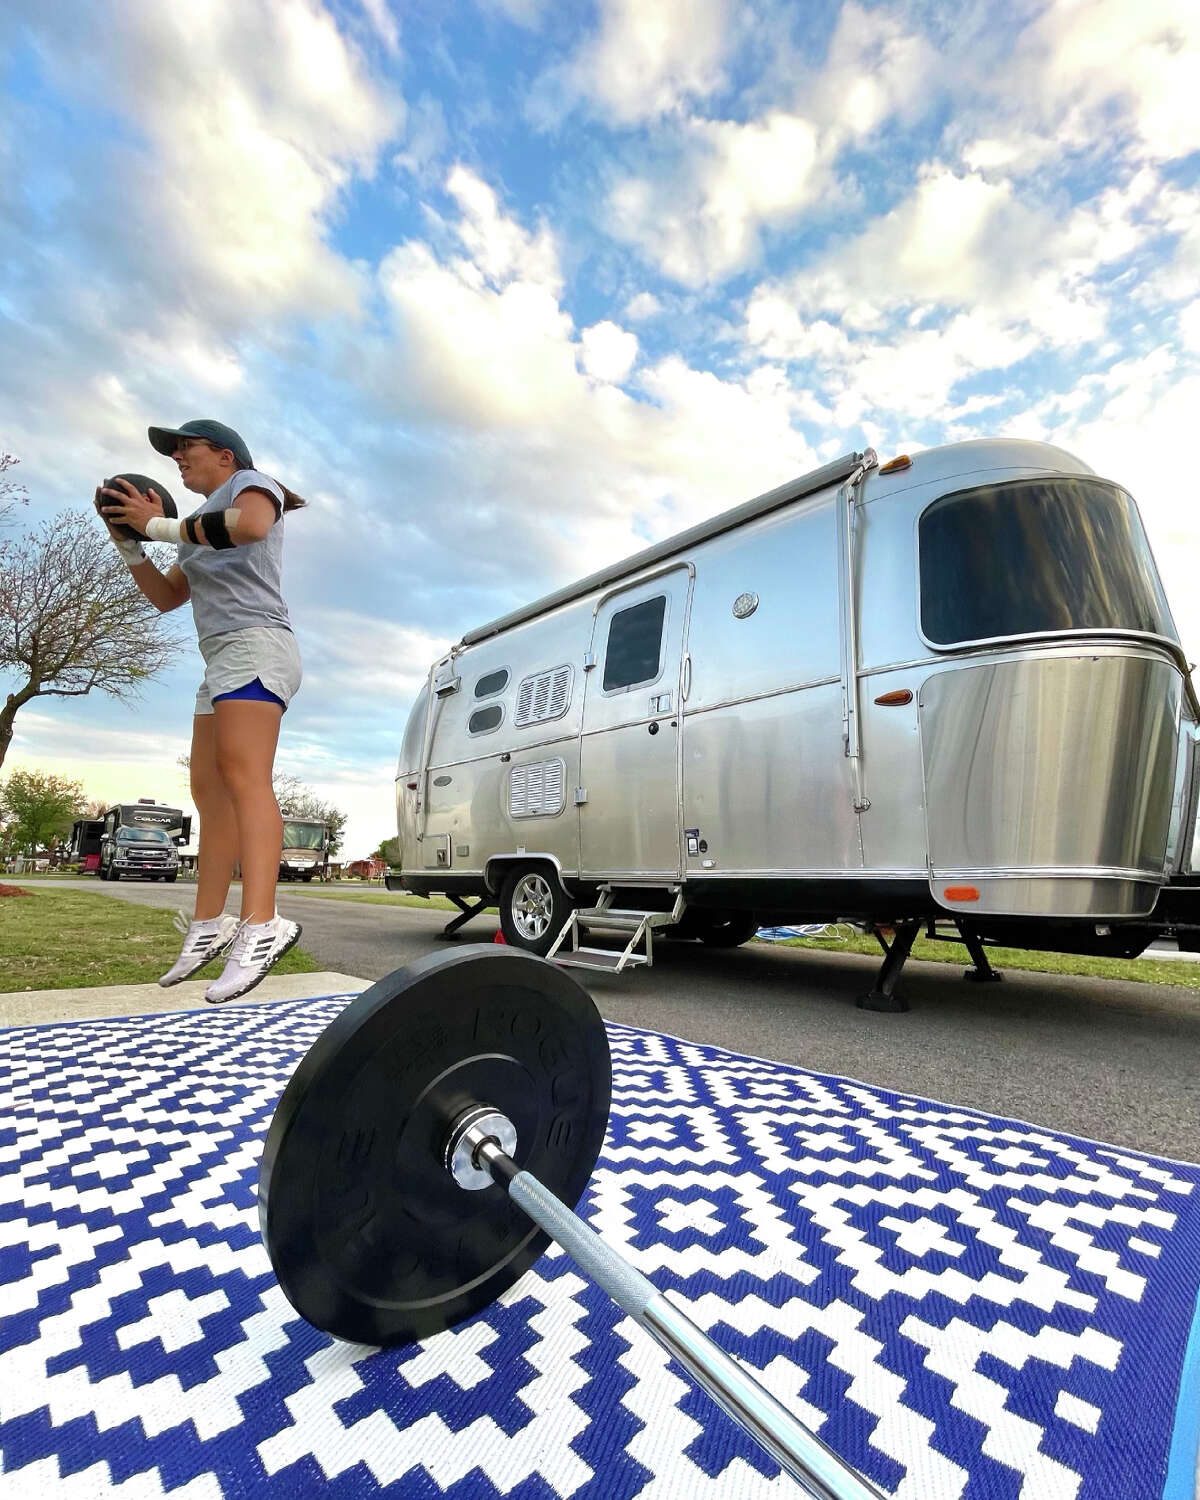 Dorsey Addicks is ranked 14th in driving distance on the Symetra Tour, averaging 281 yards. She lives full-time in an Airstream, 2017 model, and completes her workouts in campgrounds. (Photo by Rich Addicks)